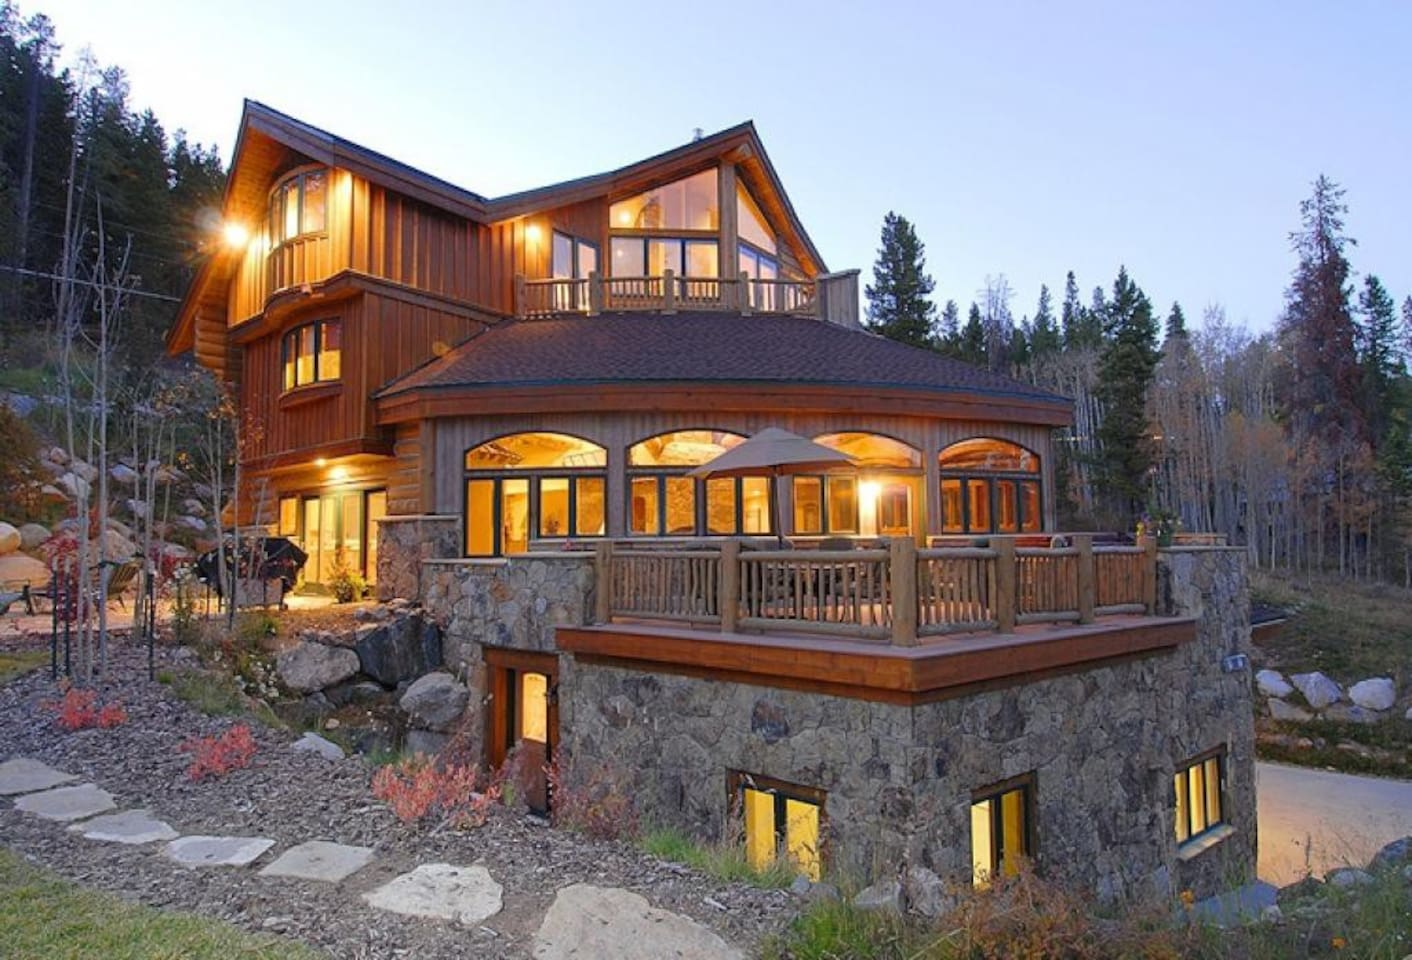 A truly unique architecture with lots of amenities and true mountain getaway feeling.